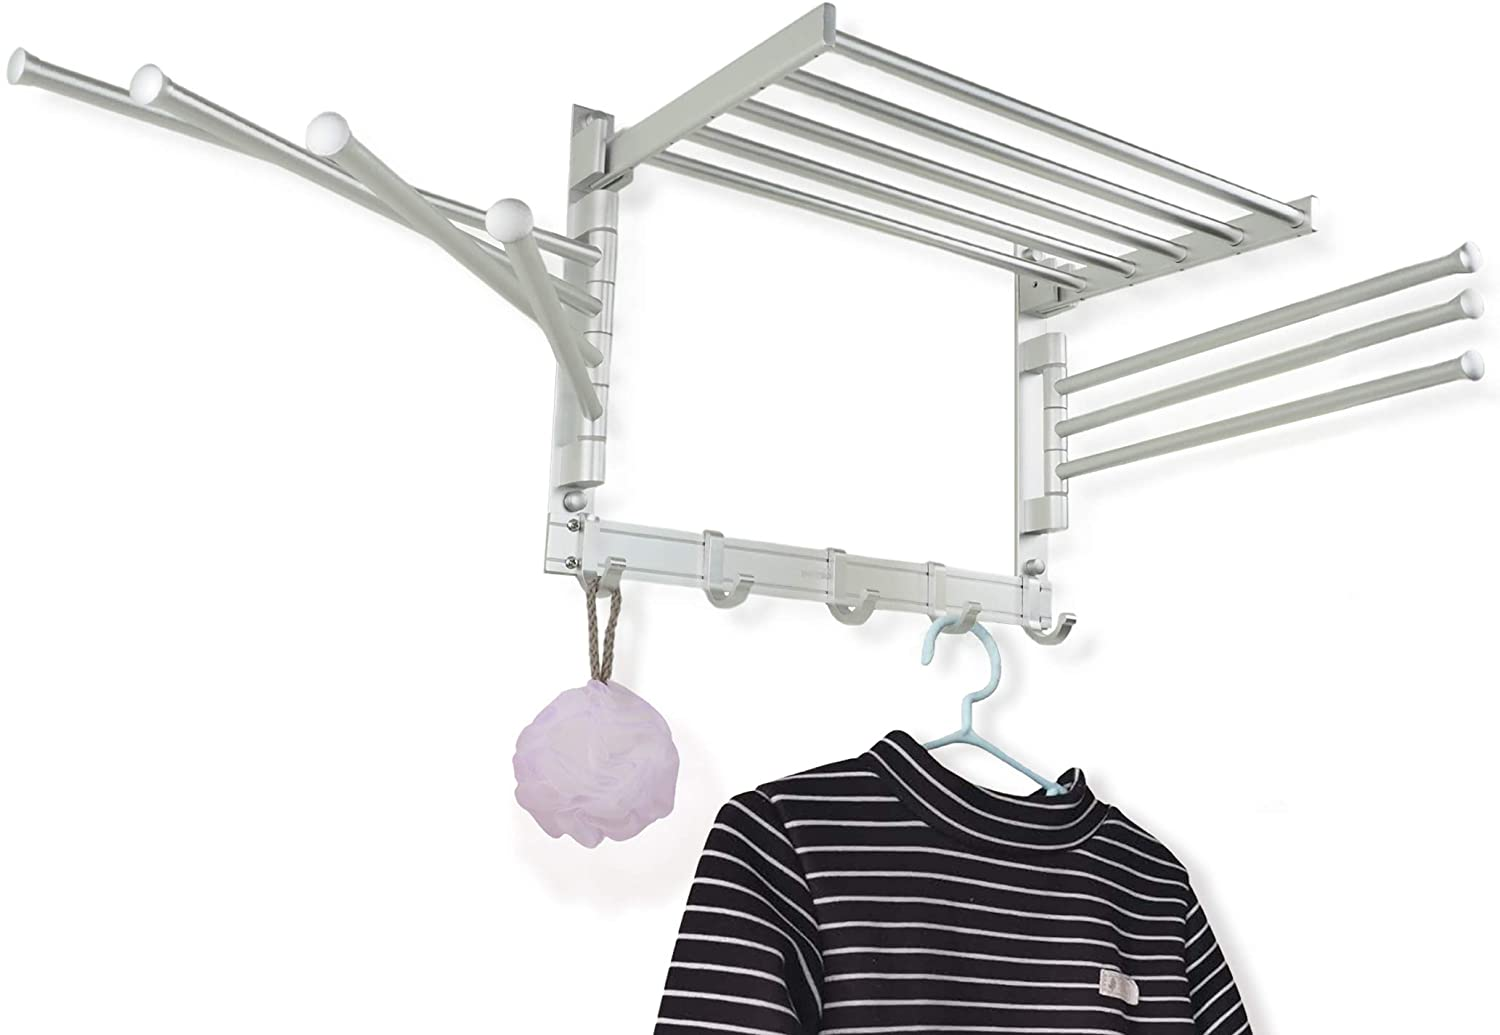 Drying Rotatable Hook Wall Mounted Clothes Hanger Laundry Hangers Storage Rack